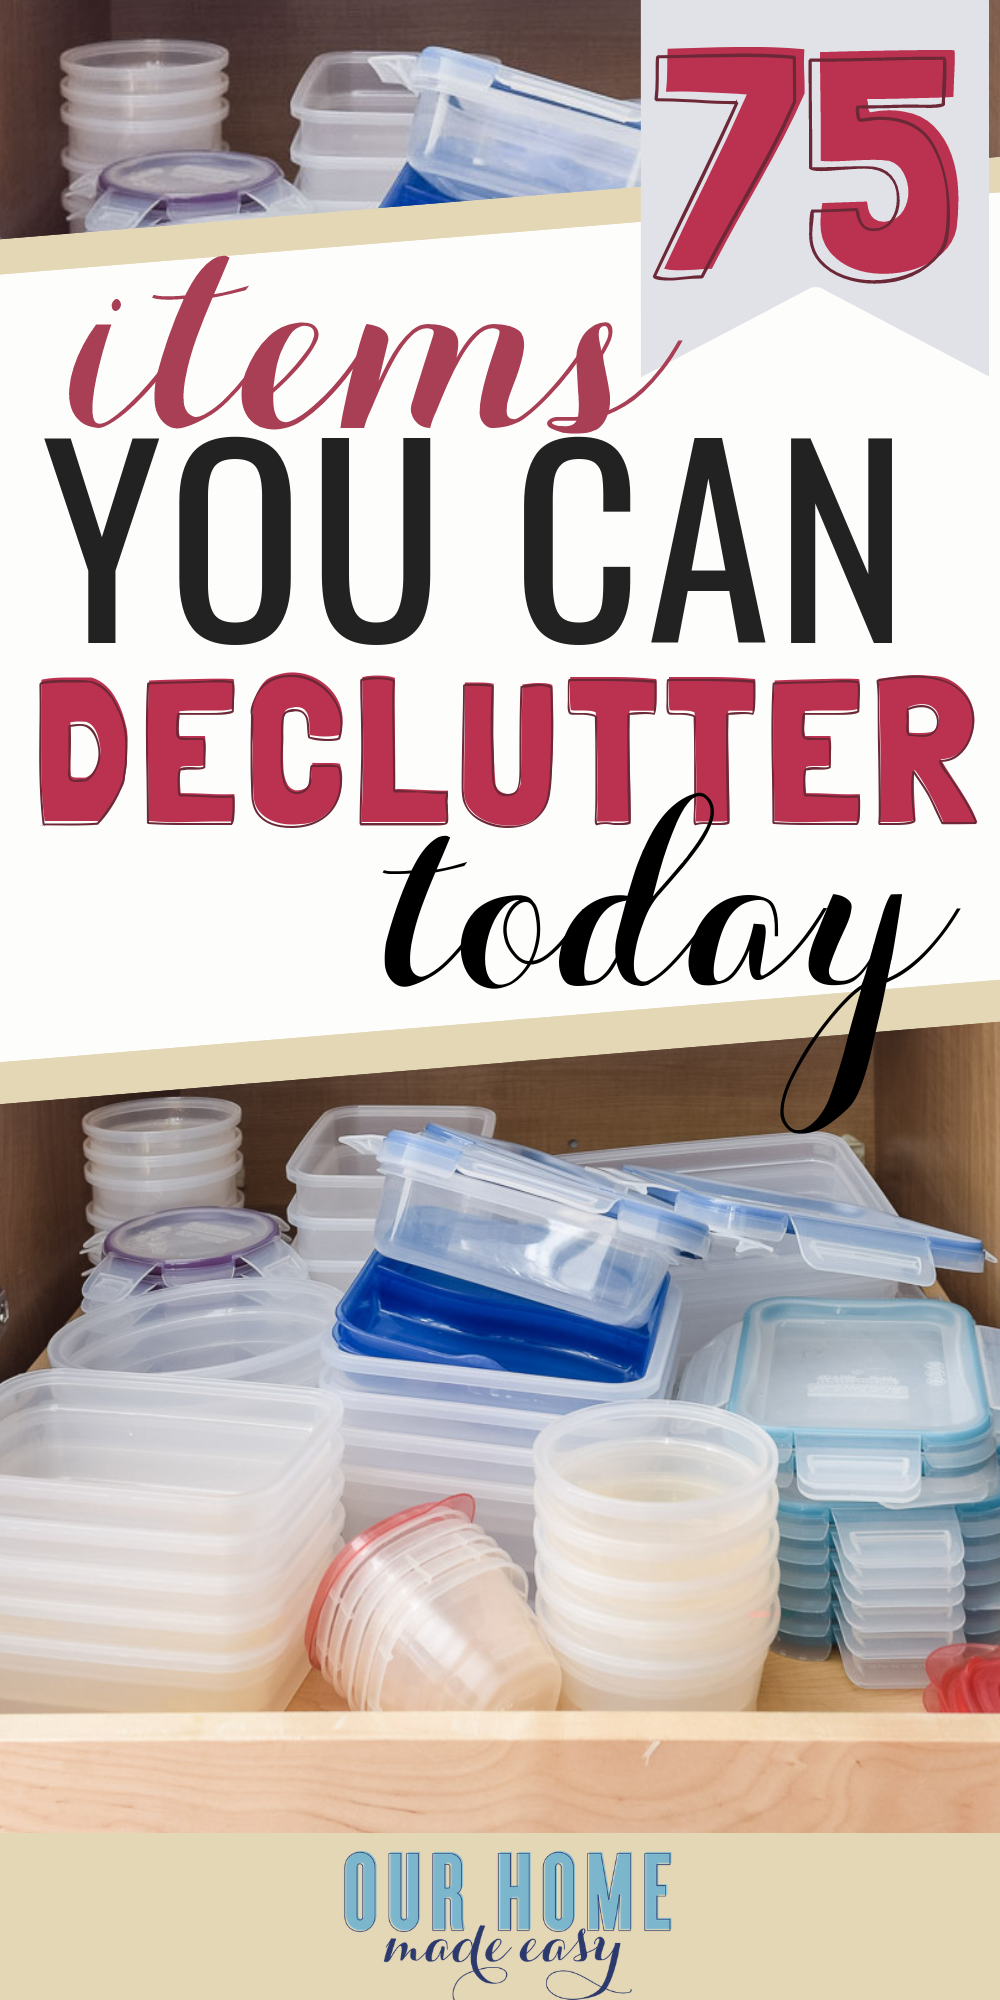 Here are 75 items that you can declutter from your home RIGHT NOW for free! Start organizing your home by clearing out the overwhelm. Click to see all 75 items! #organization #ourhomemadeeasy